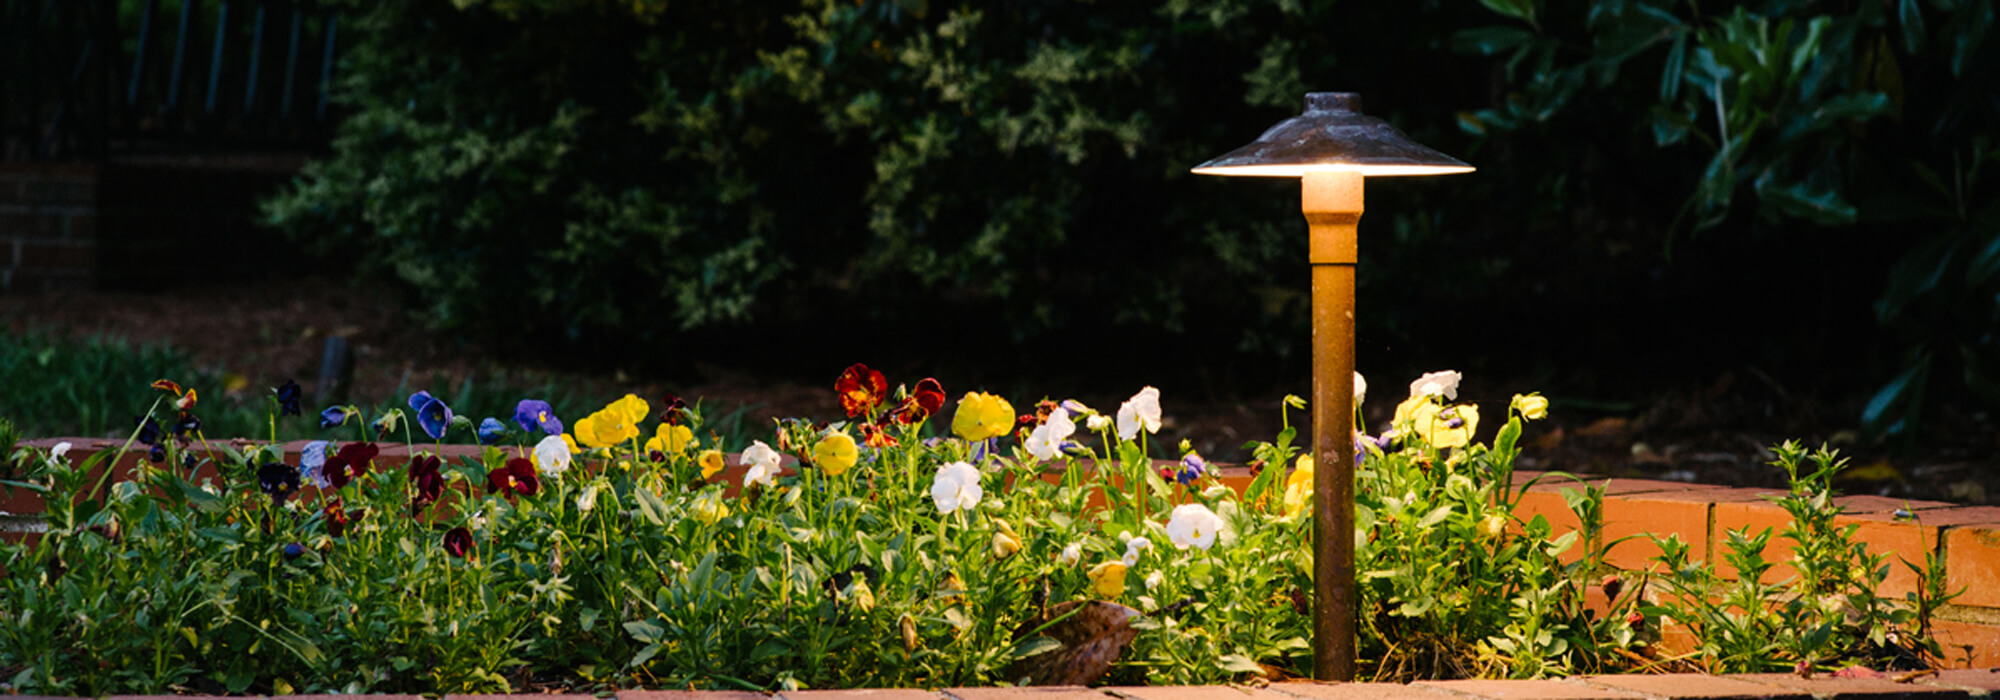 Garden lighting in flower bed